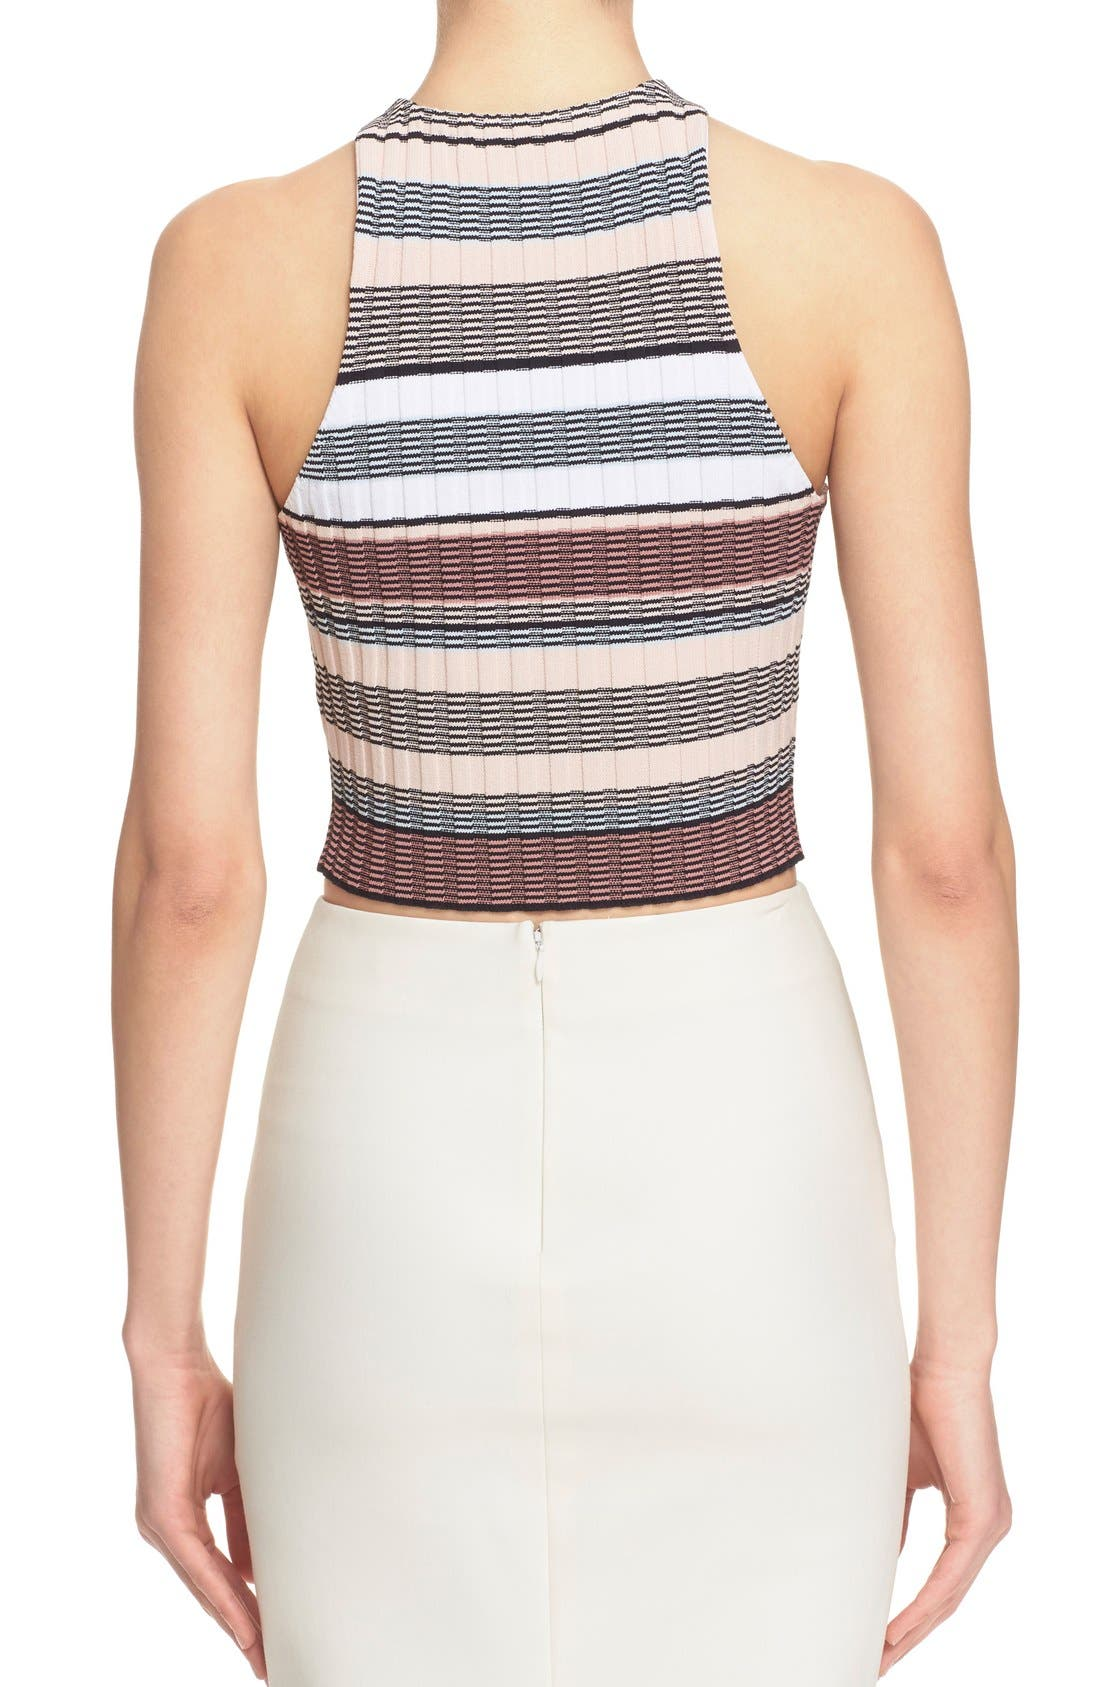 Alternate Image 3  - Elizabeth and James Stripe Racerback Crop Top